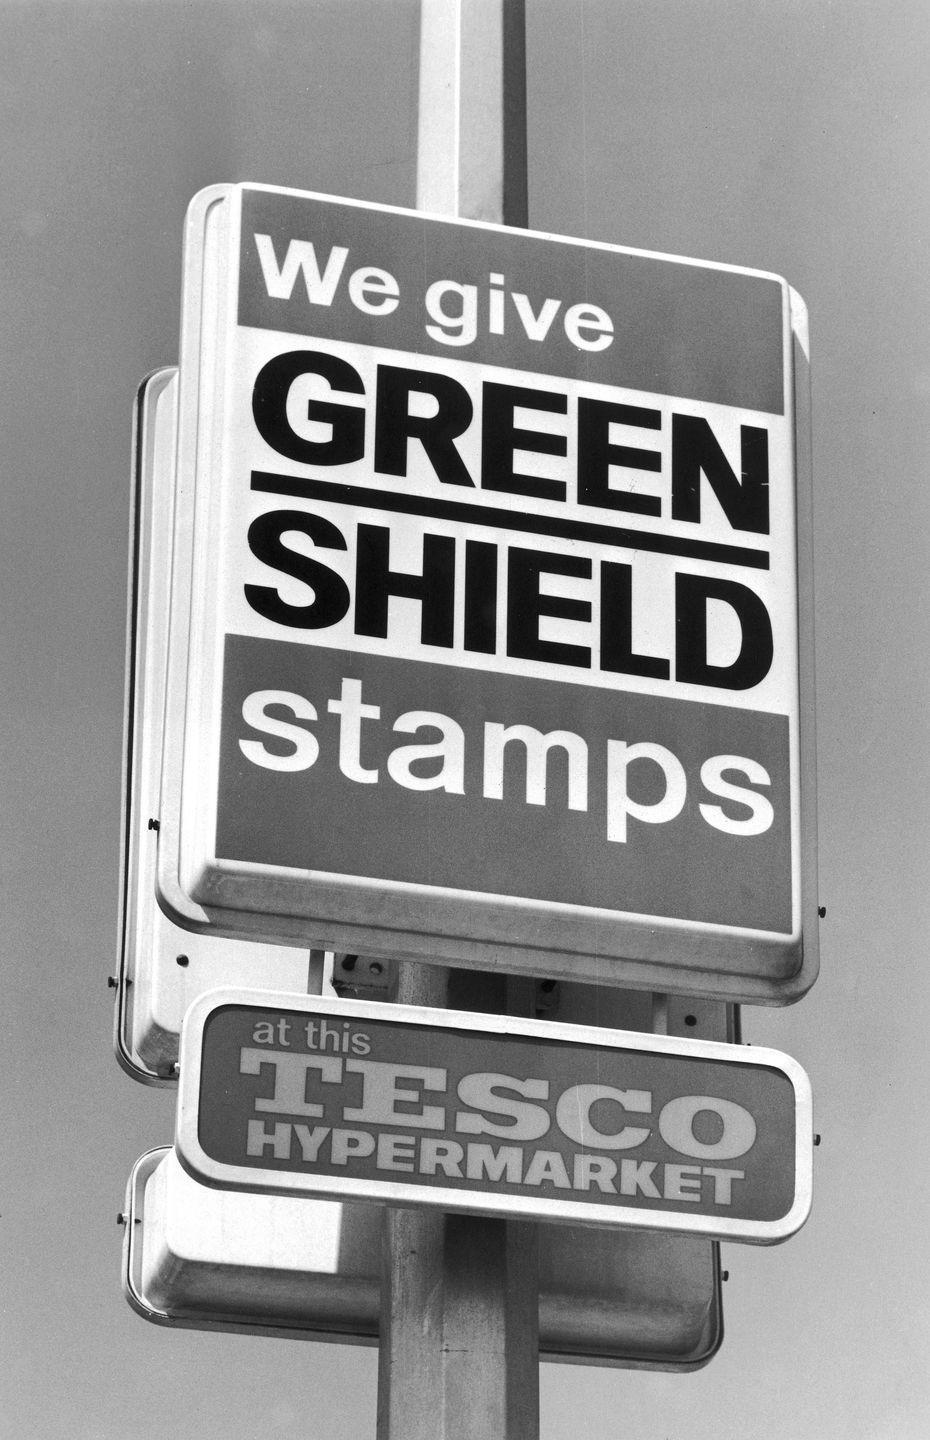 """<p>Think of green stamps like coupons on steroids. The <a href=""""https://flashbak.com/livin-the-dream-with-green-stamps-a-1975-catalog-26187/"""" rel=""""nofollow noopener"""" target=""""_blank"""" data-ylk=""""slk:loyalty program, established by Sperry and Hutchinson"""" class=""""link rapid-noclick-resp"""">loyalty program, established by Sperry and Hutchinson</a>, allowed shoppers to collect stamps at their local grocery and trade them in for items in the S&H catalog. Green stamps were huge in the '70s — <em>The Brady Bunch</em> even did an episode about them — but the trend faded by the '80s.</p>"""